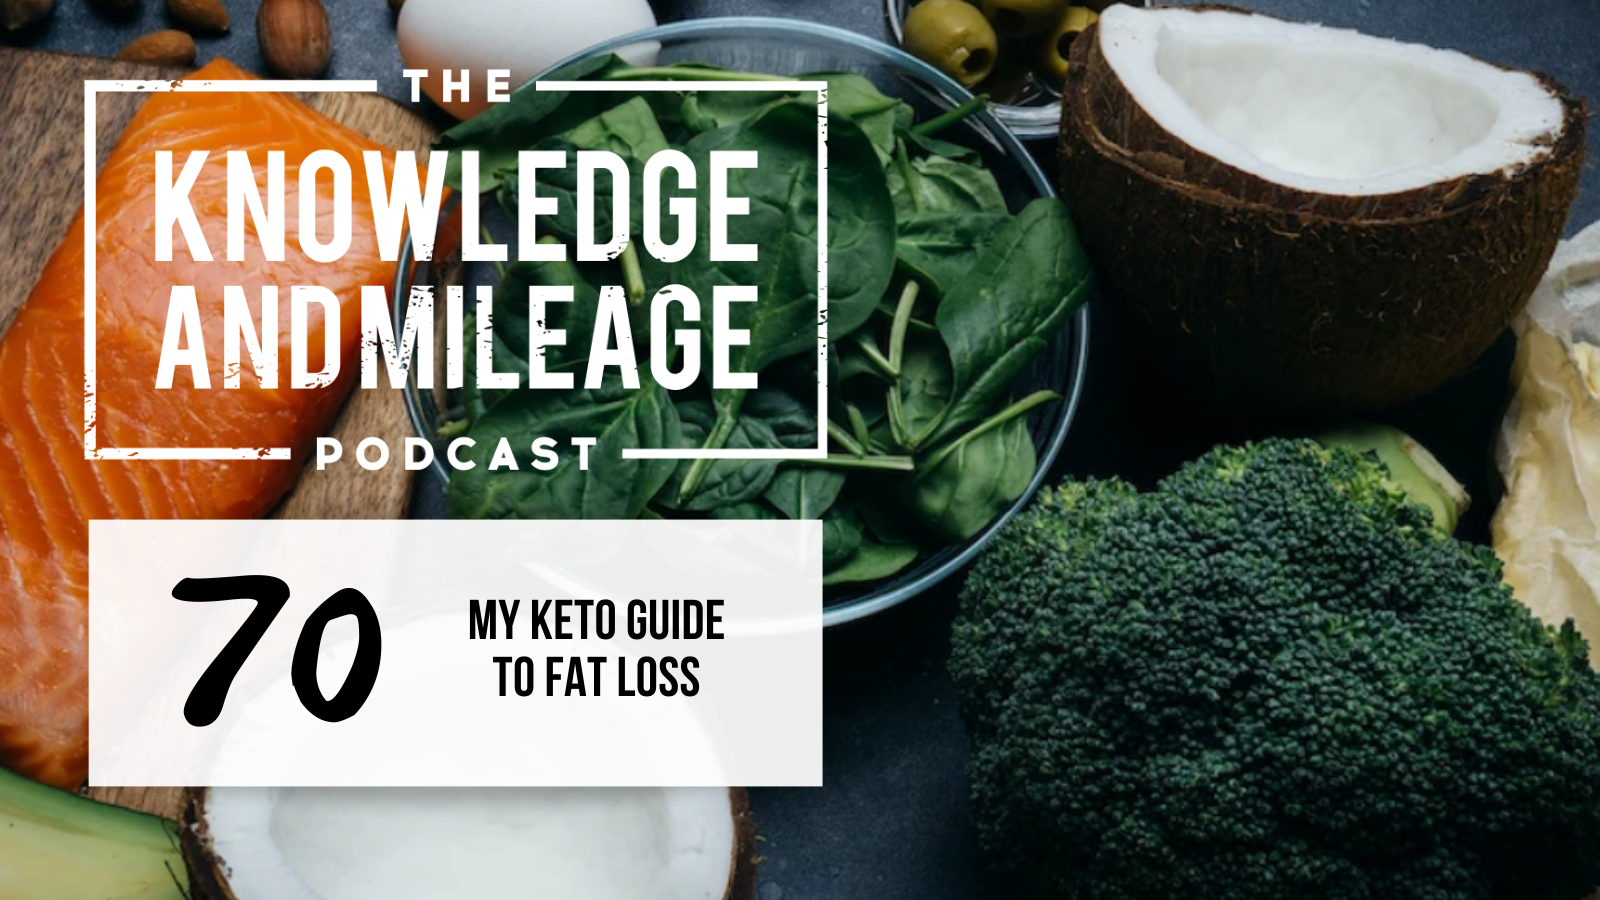 EP 70: My Keto Guide to Fat Loss